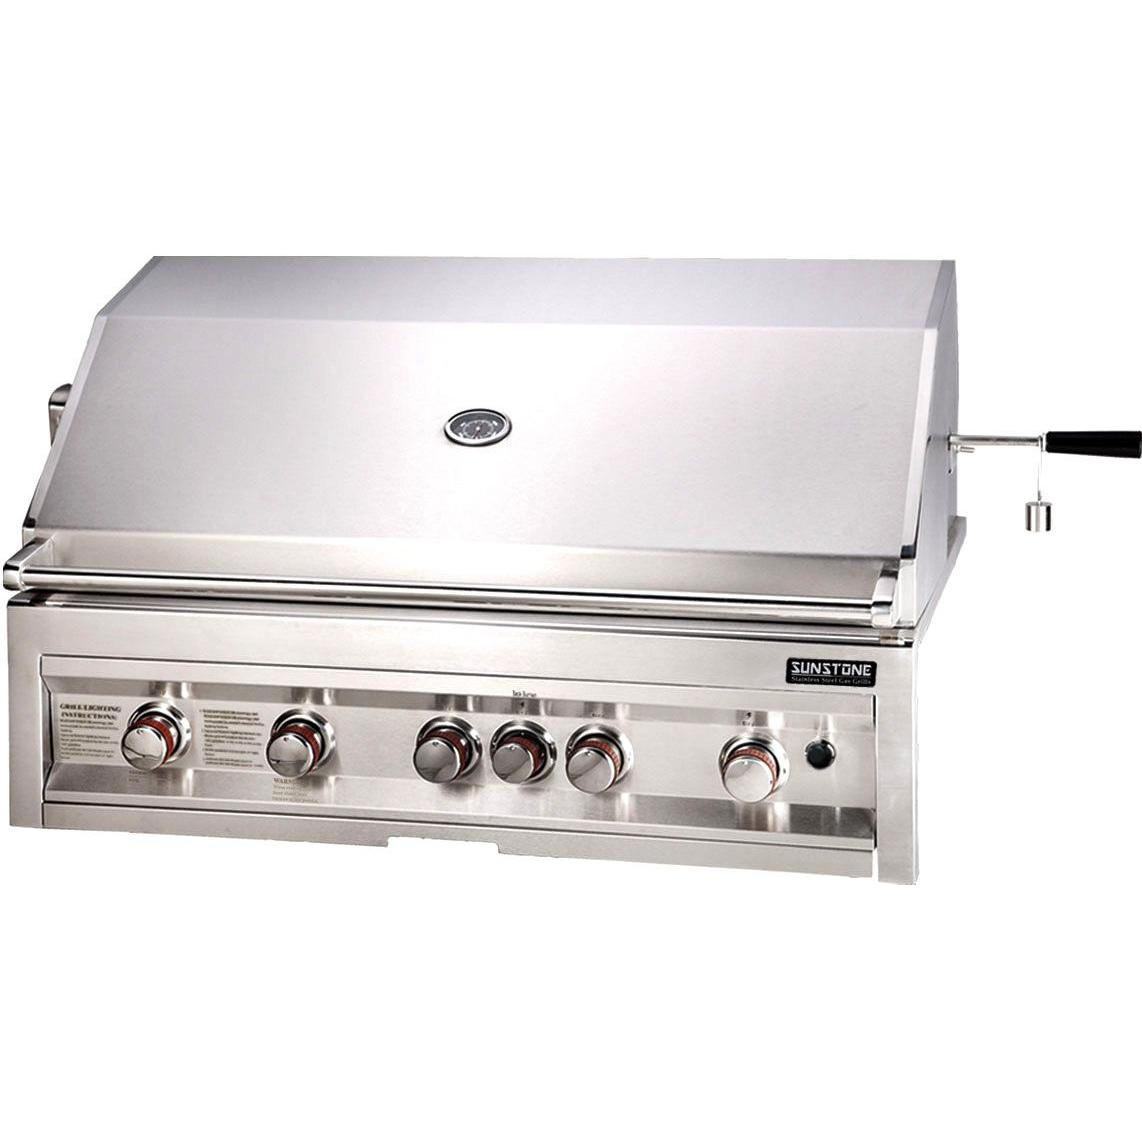 Sunstone Grills 42 Inch 5 Burner Natural Gas Grill With Rotisserie 2764858